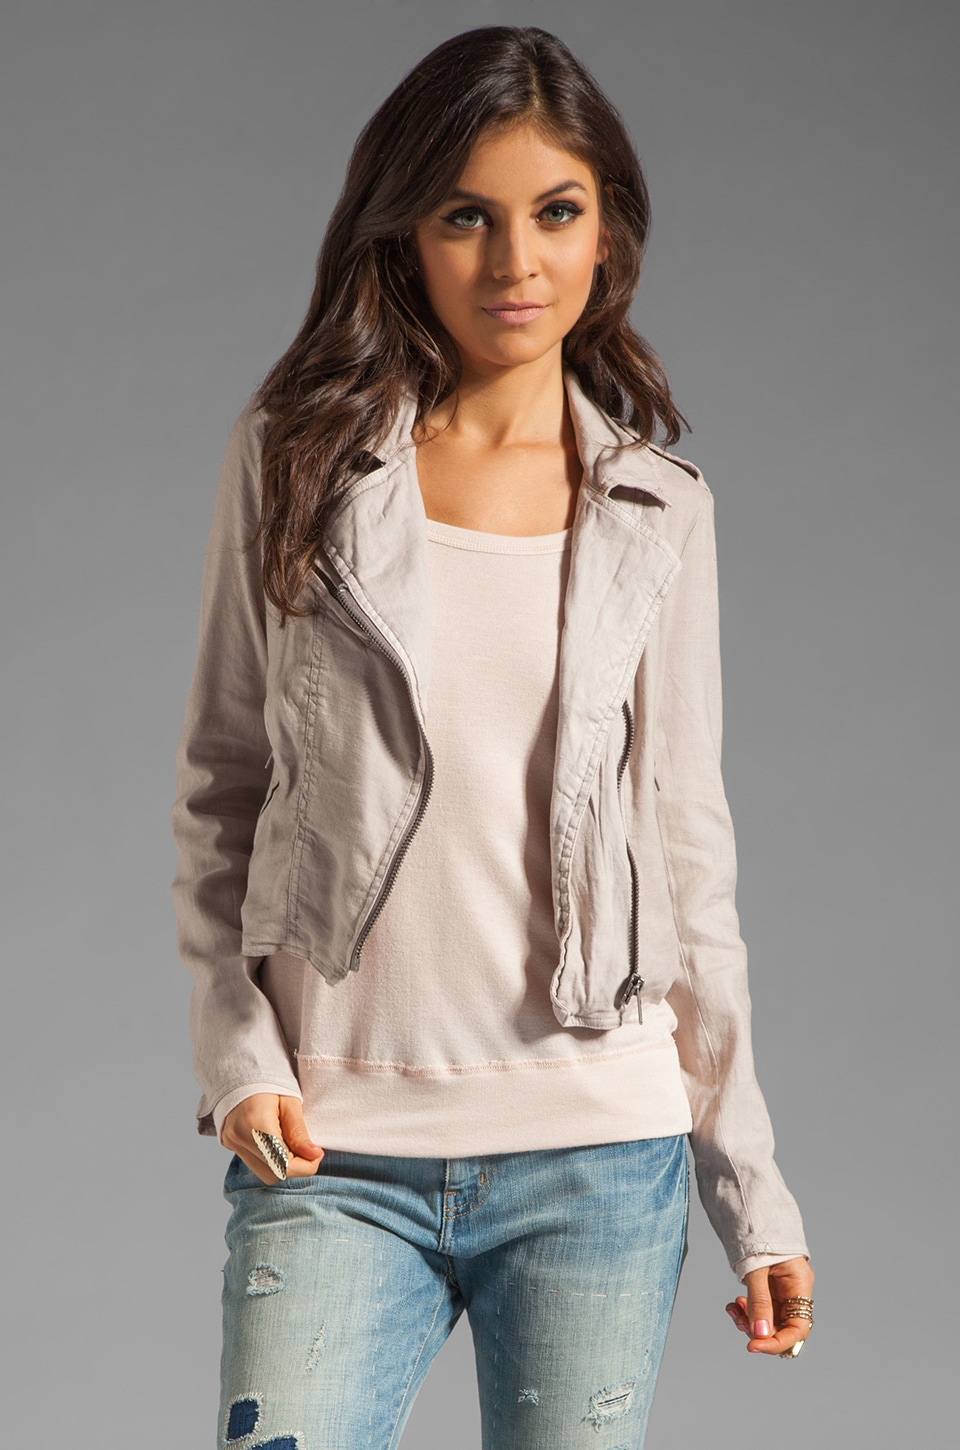 Free People Linen Moto Jacket in Fog